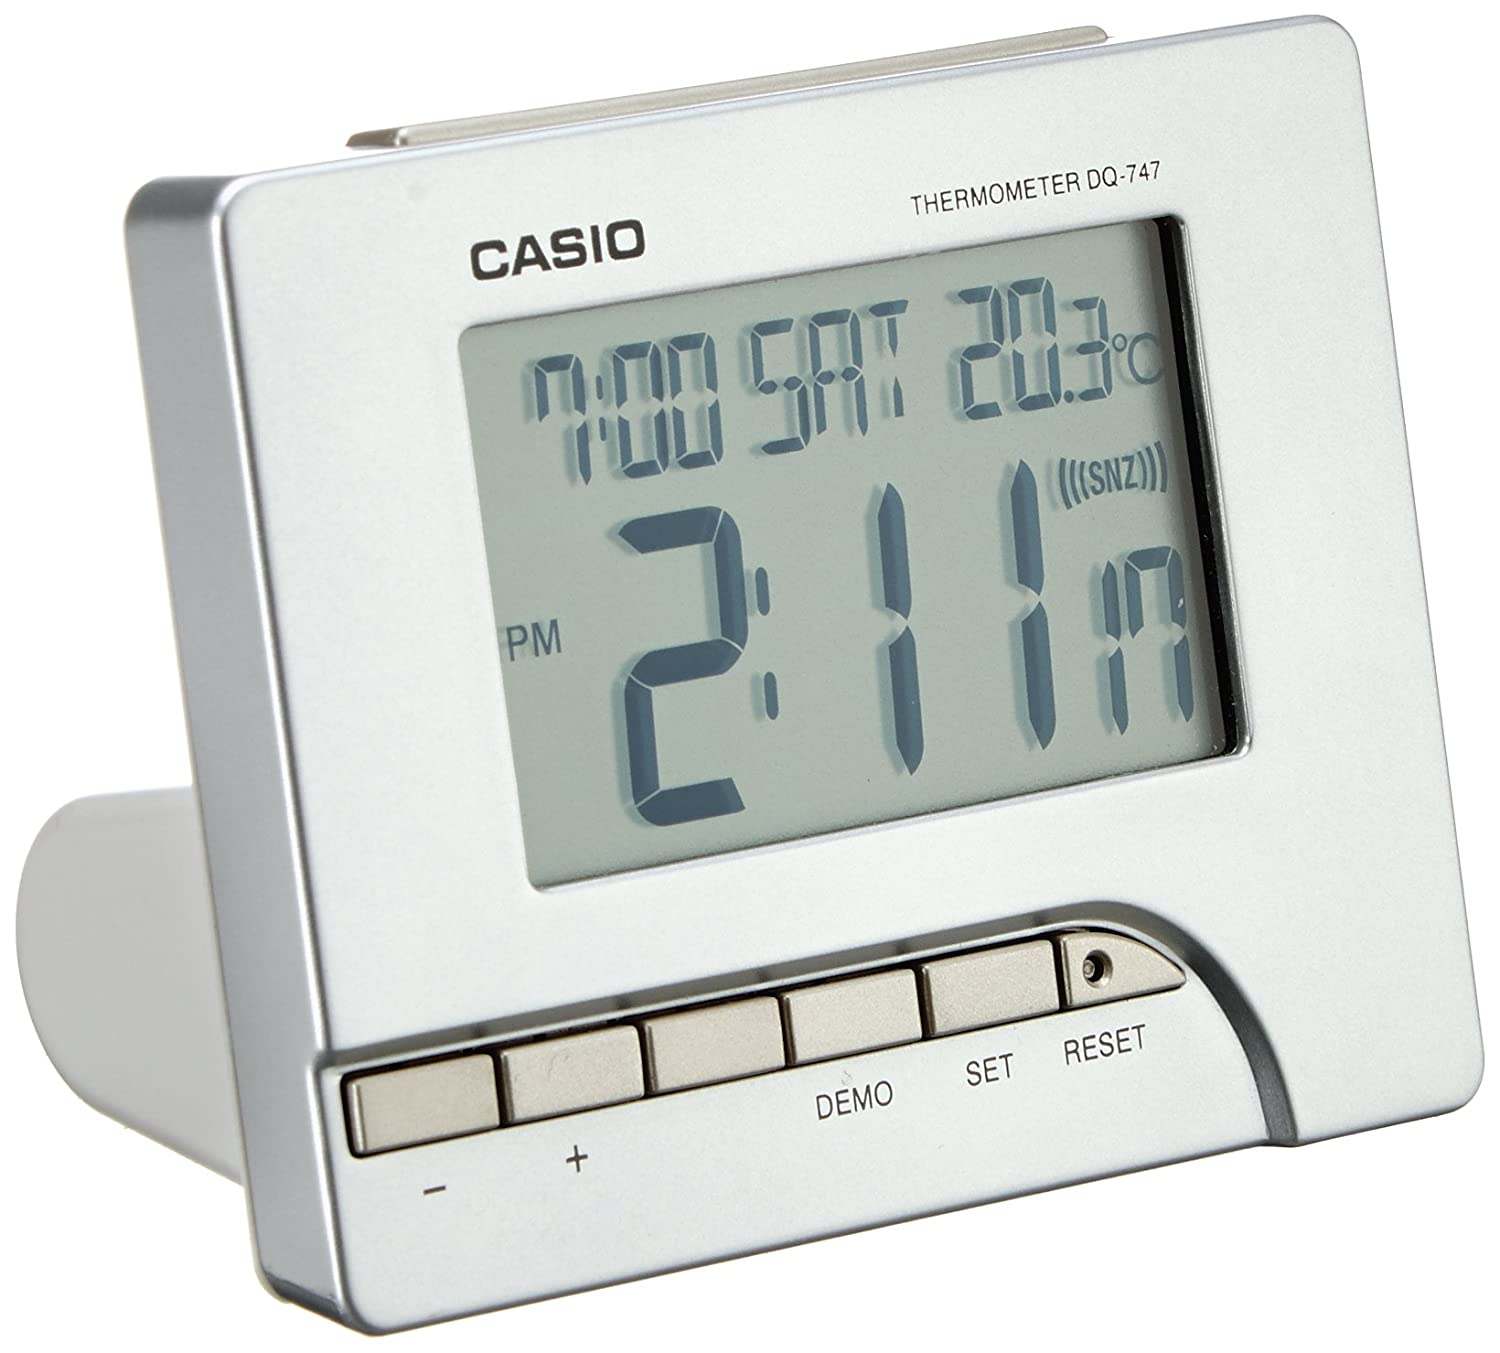 Casio Digital LED Time Temperature Snooze Calendar Weather Alarm Clock DQ747-8EF